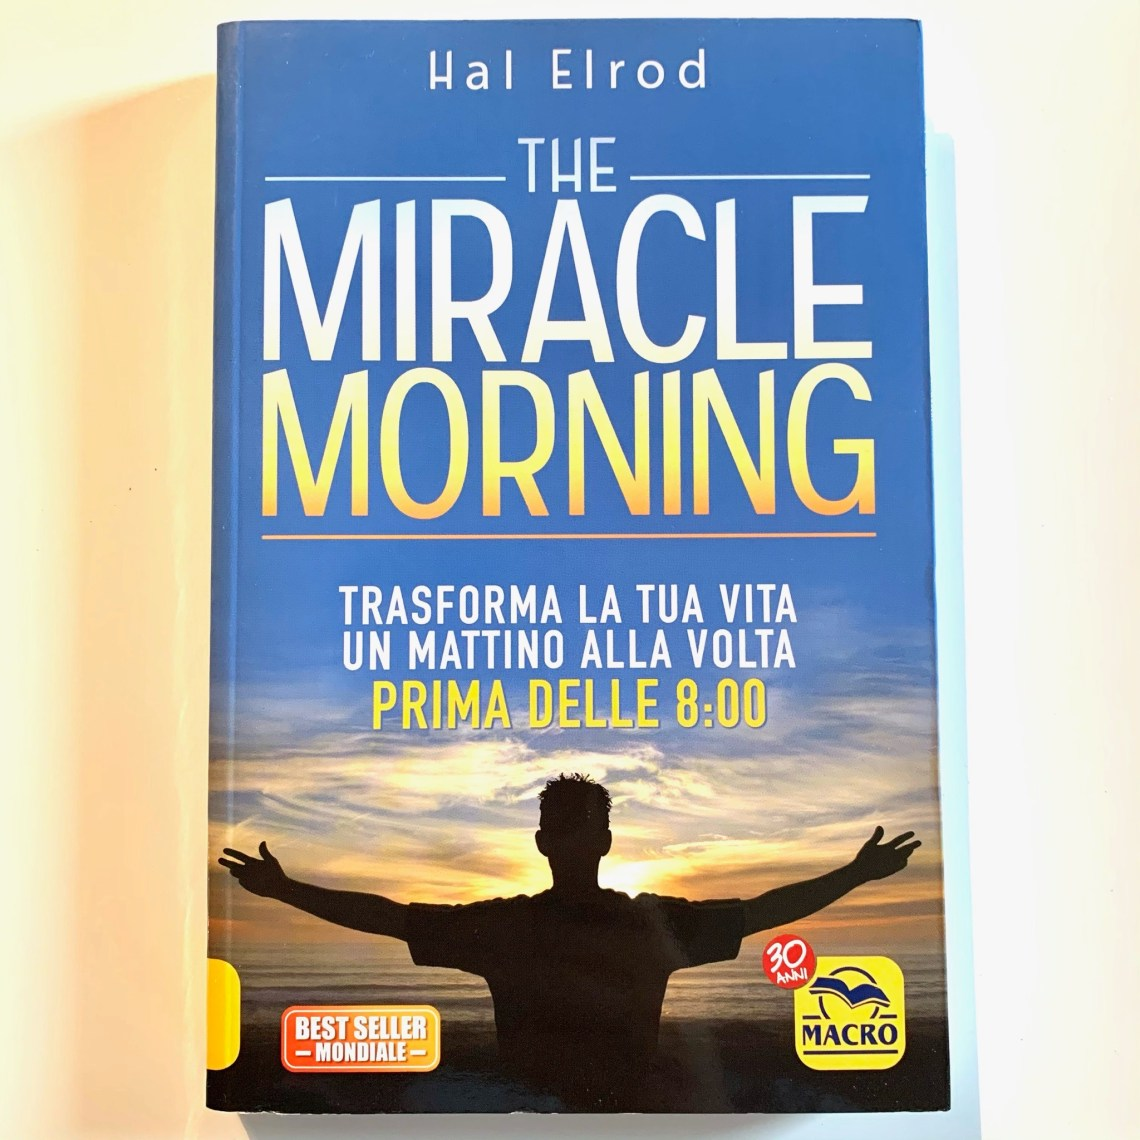 The Miracle Morning di Hal Elrod.